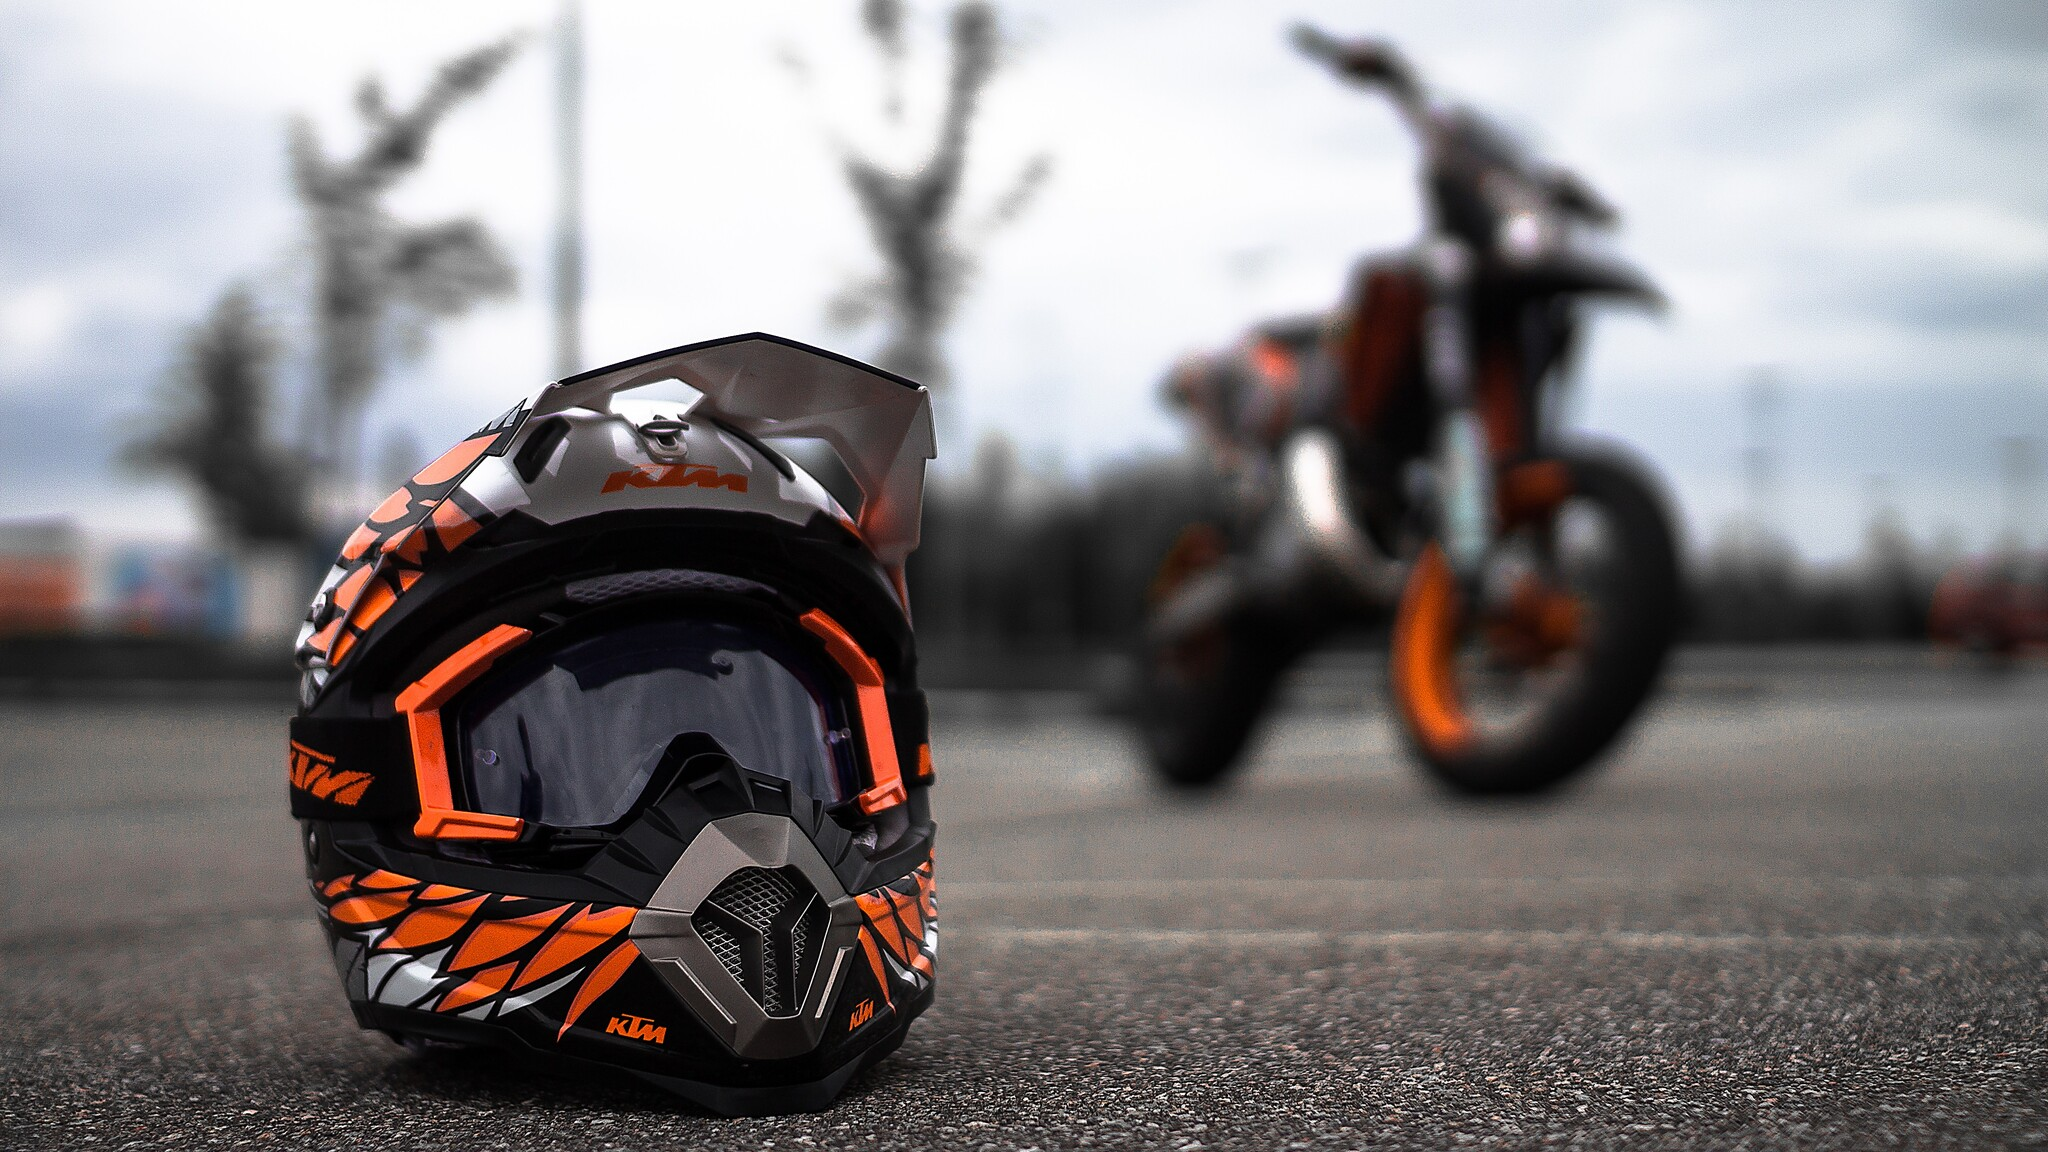 10 New Ktm Dirt Bike Wallpapers Full Hd 1080p For Pc: 2048x1152 KTM Helmet 2048x1152 Resolution HD 4k Wallpapers